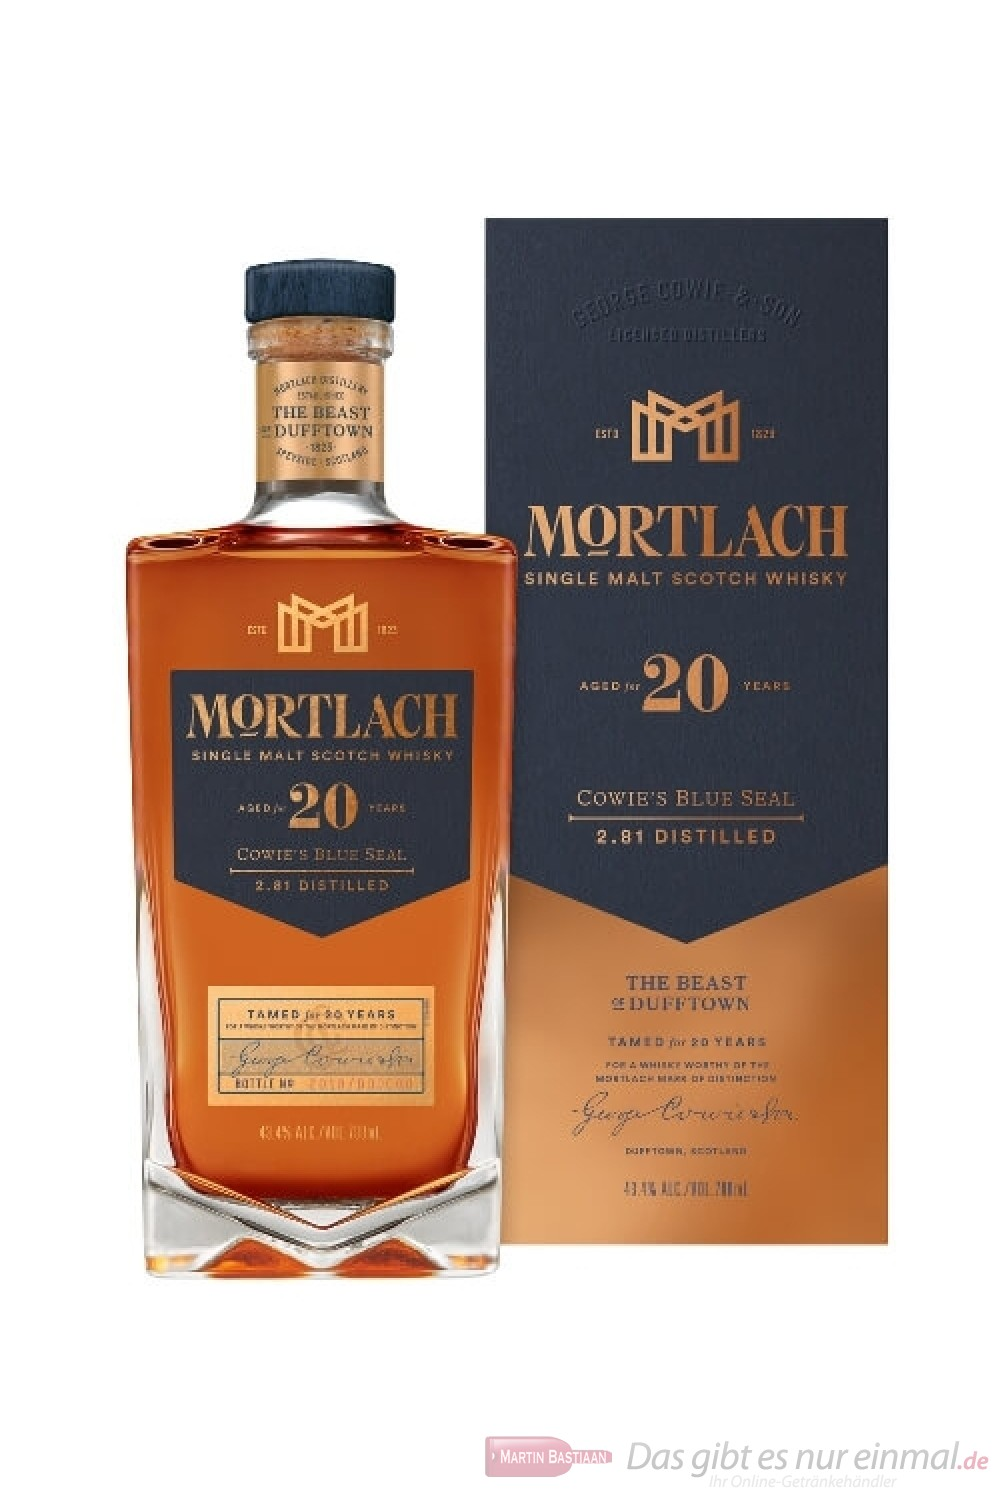 Mortlach 20 Years COWIE'S BLUE SEAL